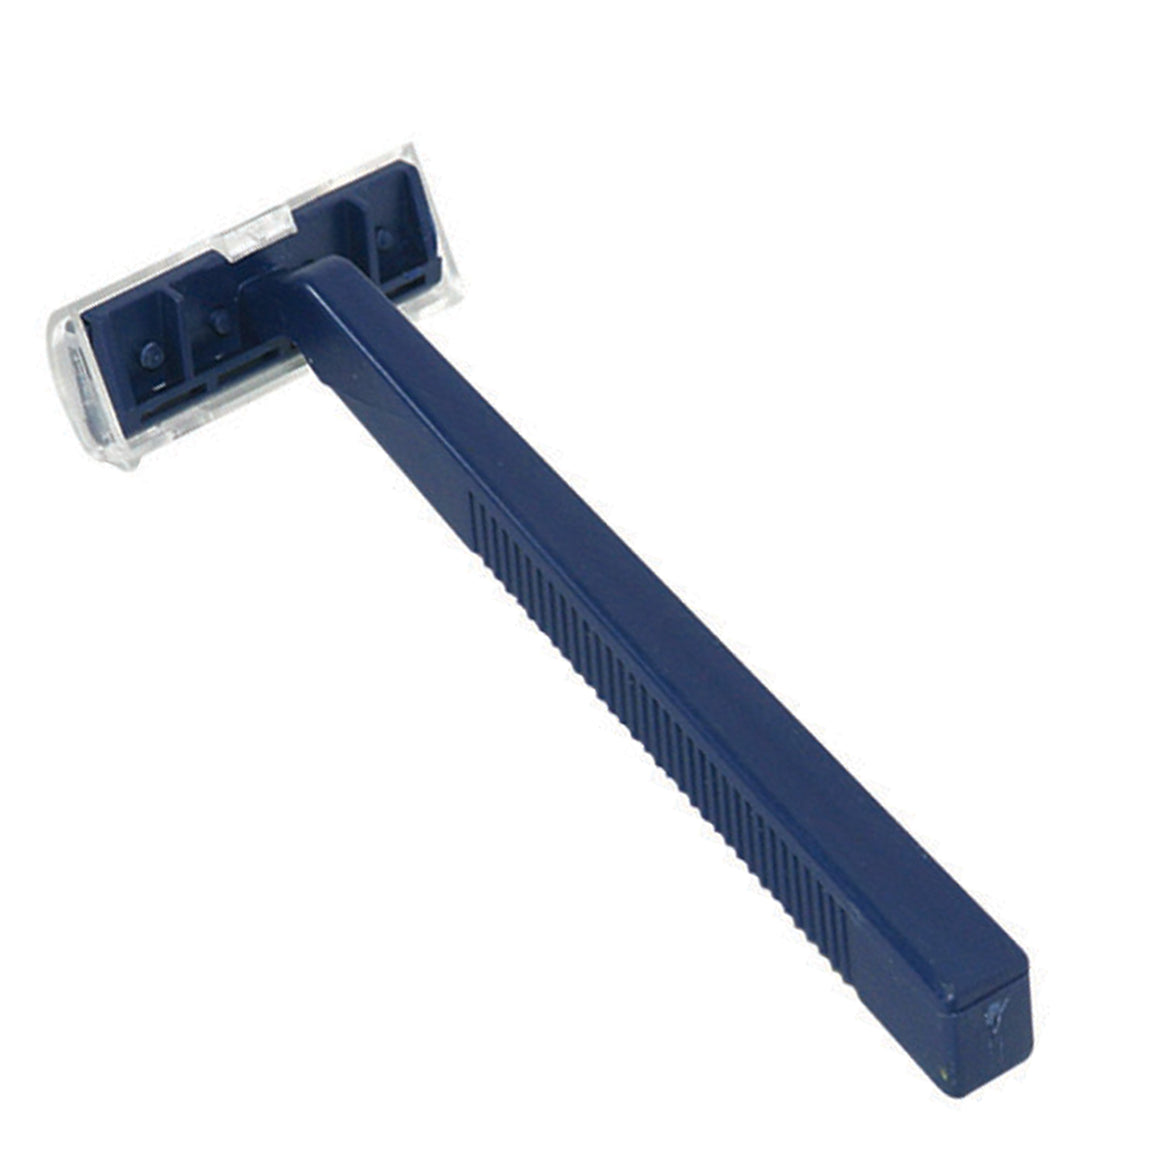 Dynarex #4250 Razor Twin Blade Disposable, 50 per box - fhmedicalservices